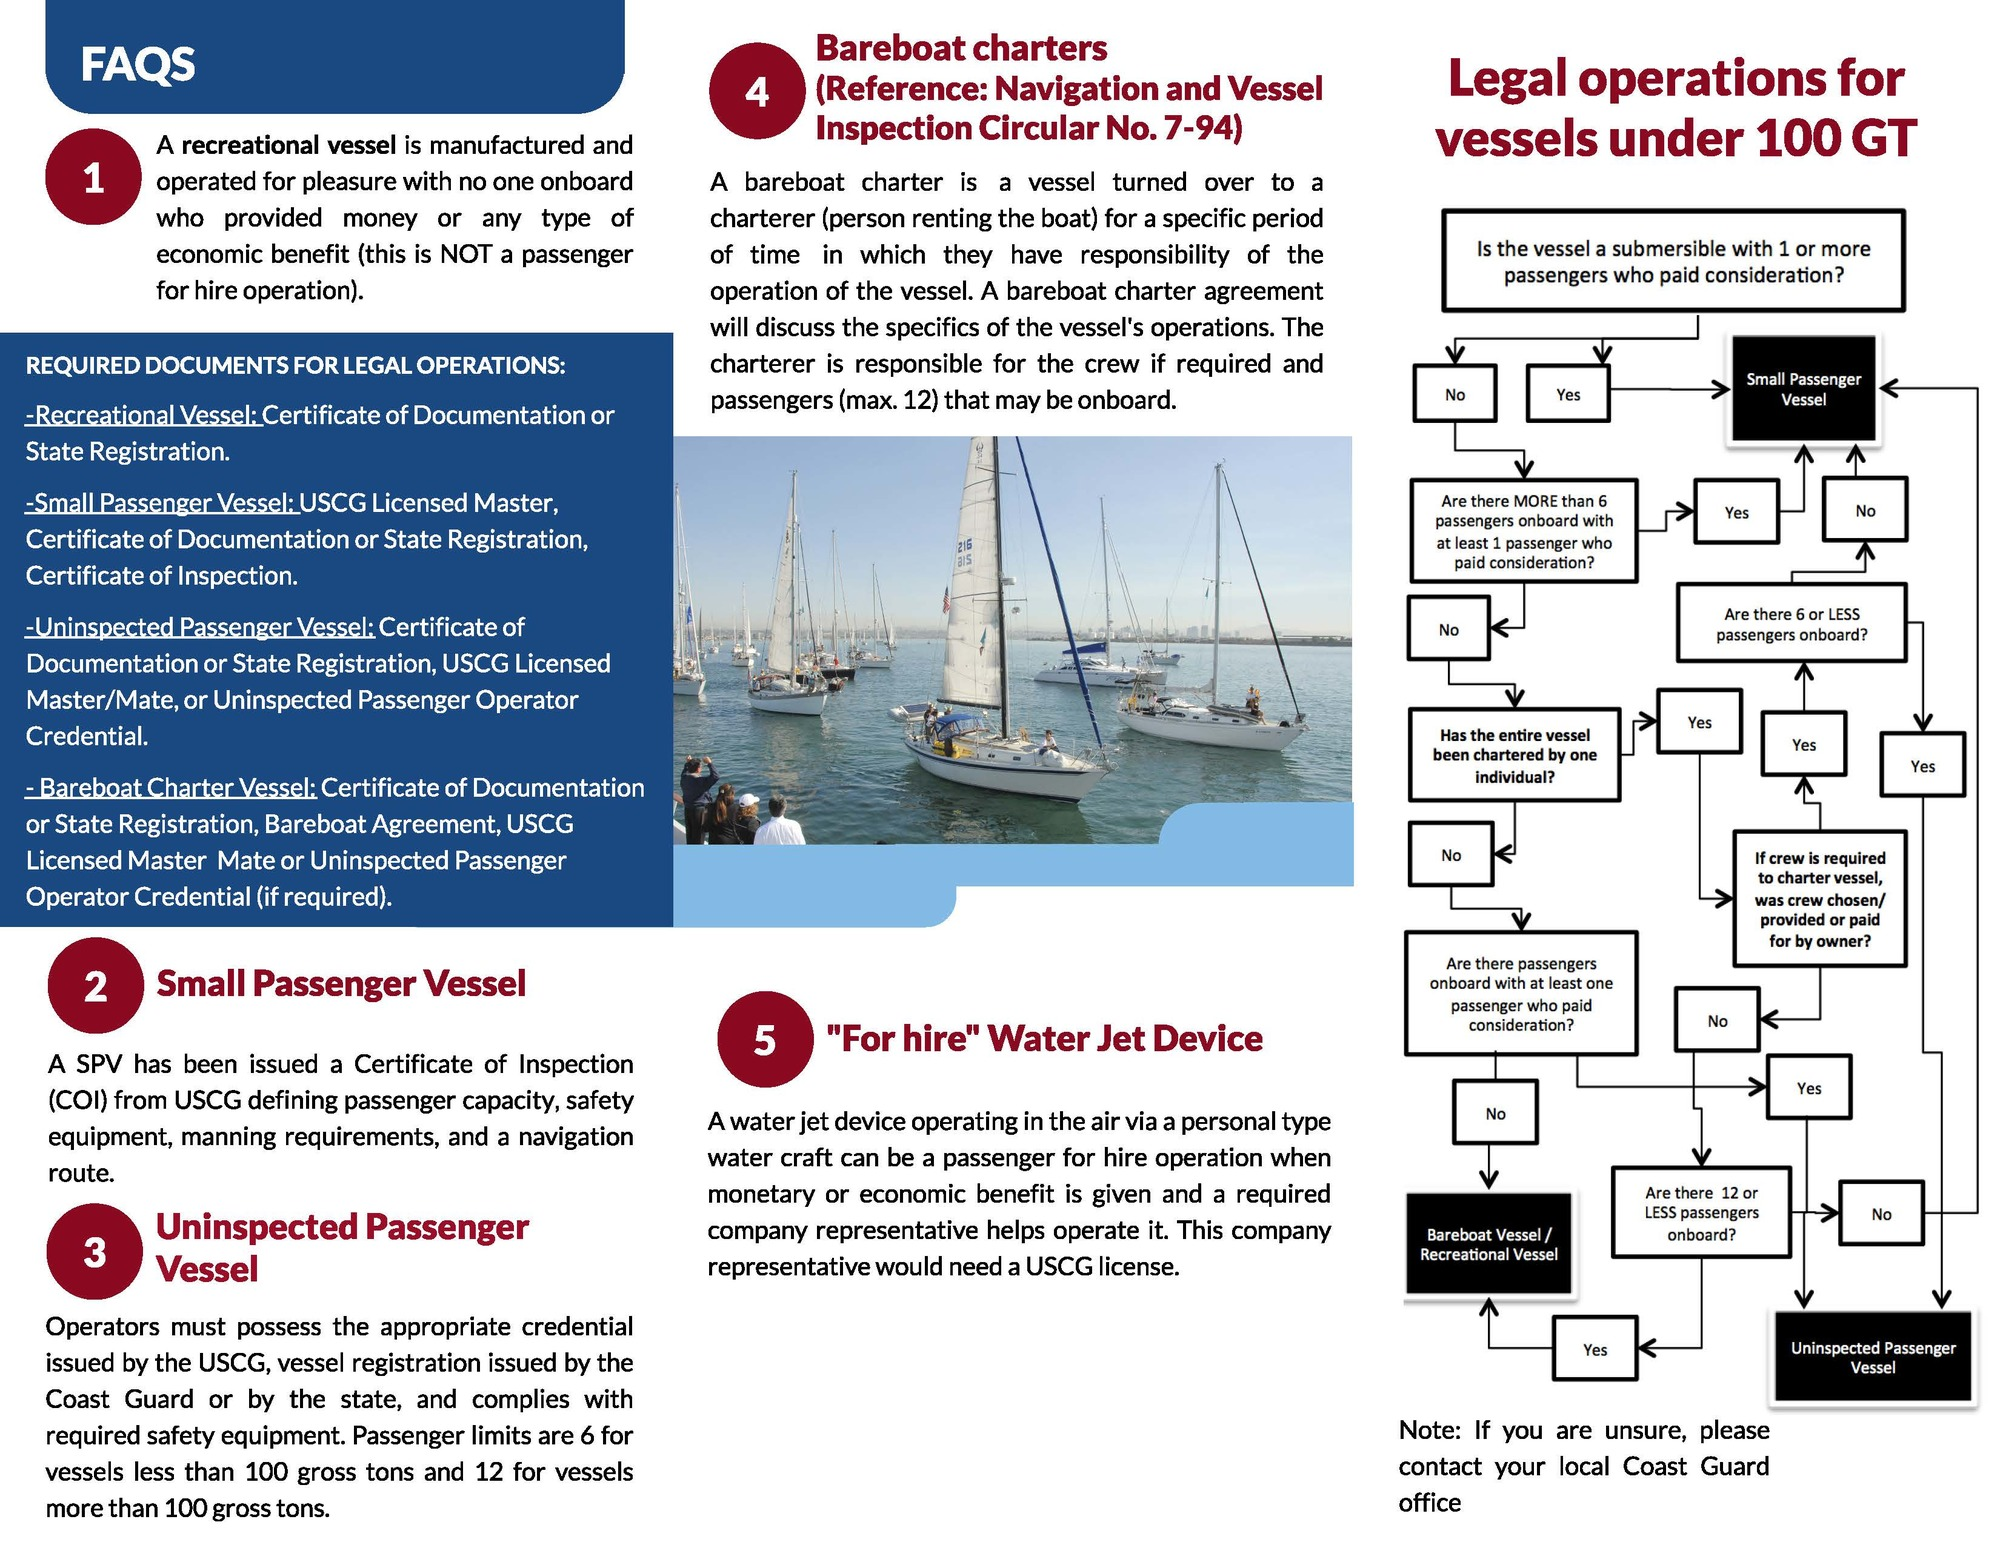 Coast Guard Warns Of Illegal Charters Operating In The San Diego Area